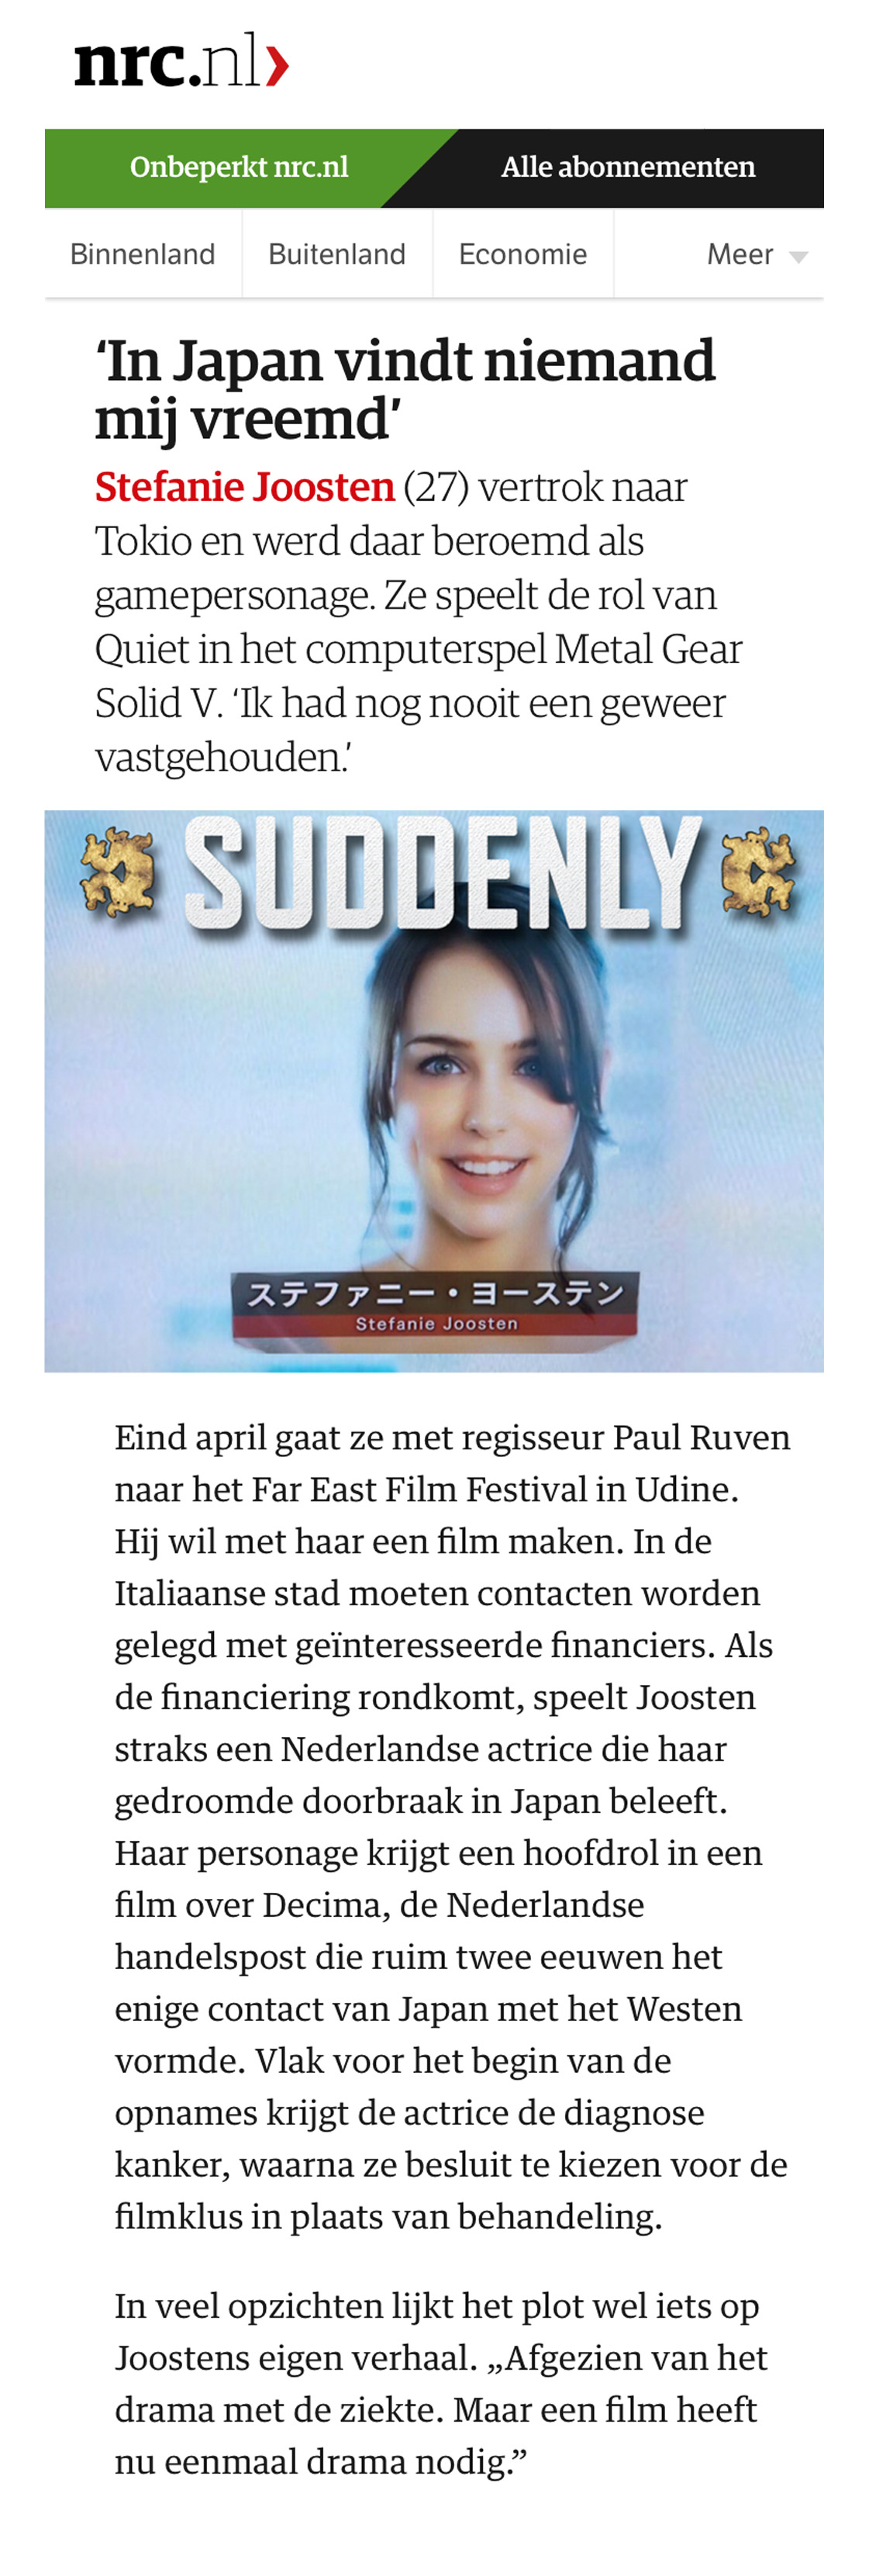 Suddenly in the NRC